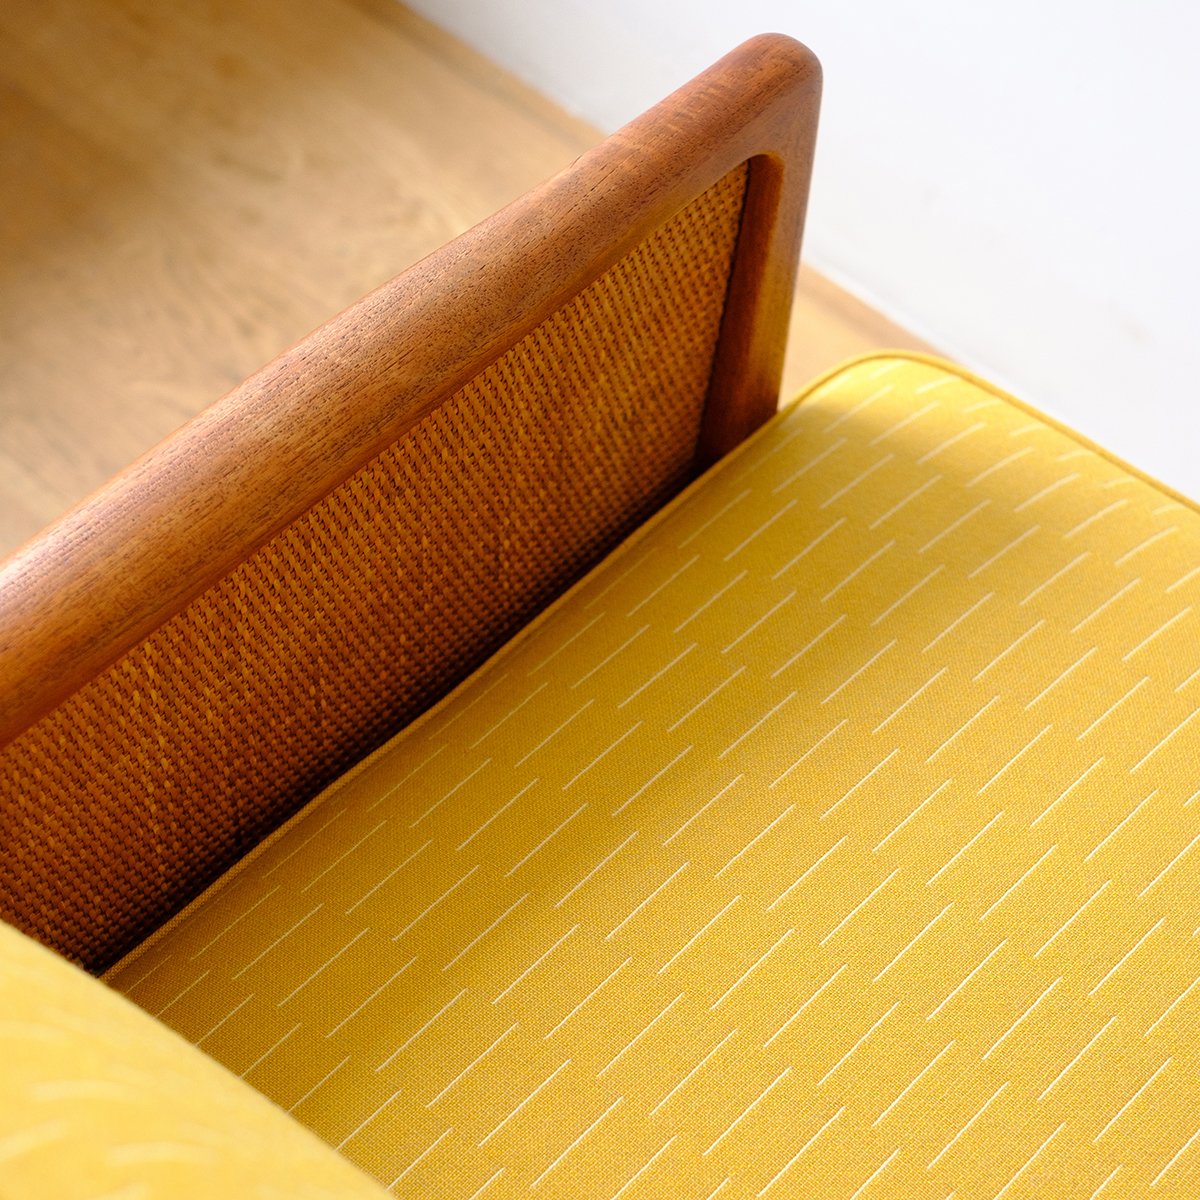 Be_Seated_Leith_sofa_with_Eleanor_Pritchard_fabric_square_4a.jpg